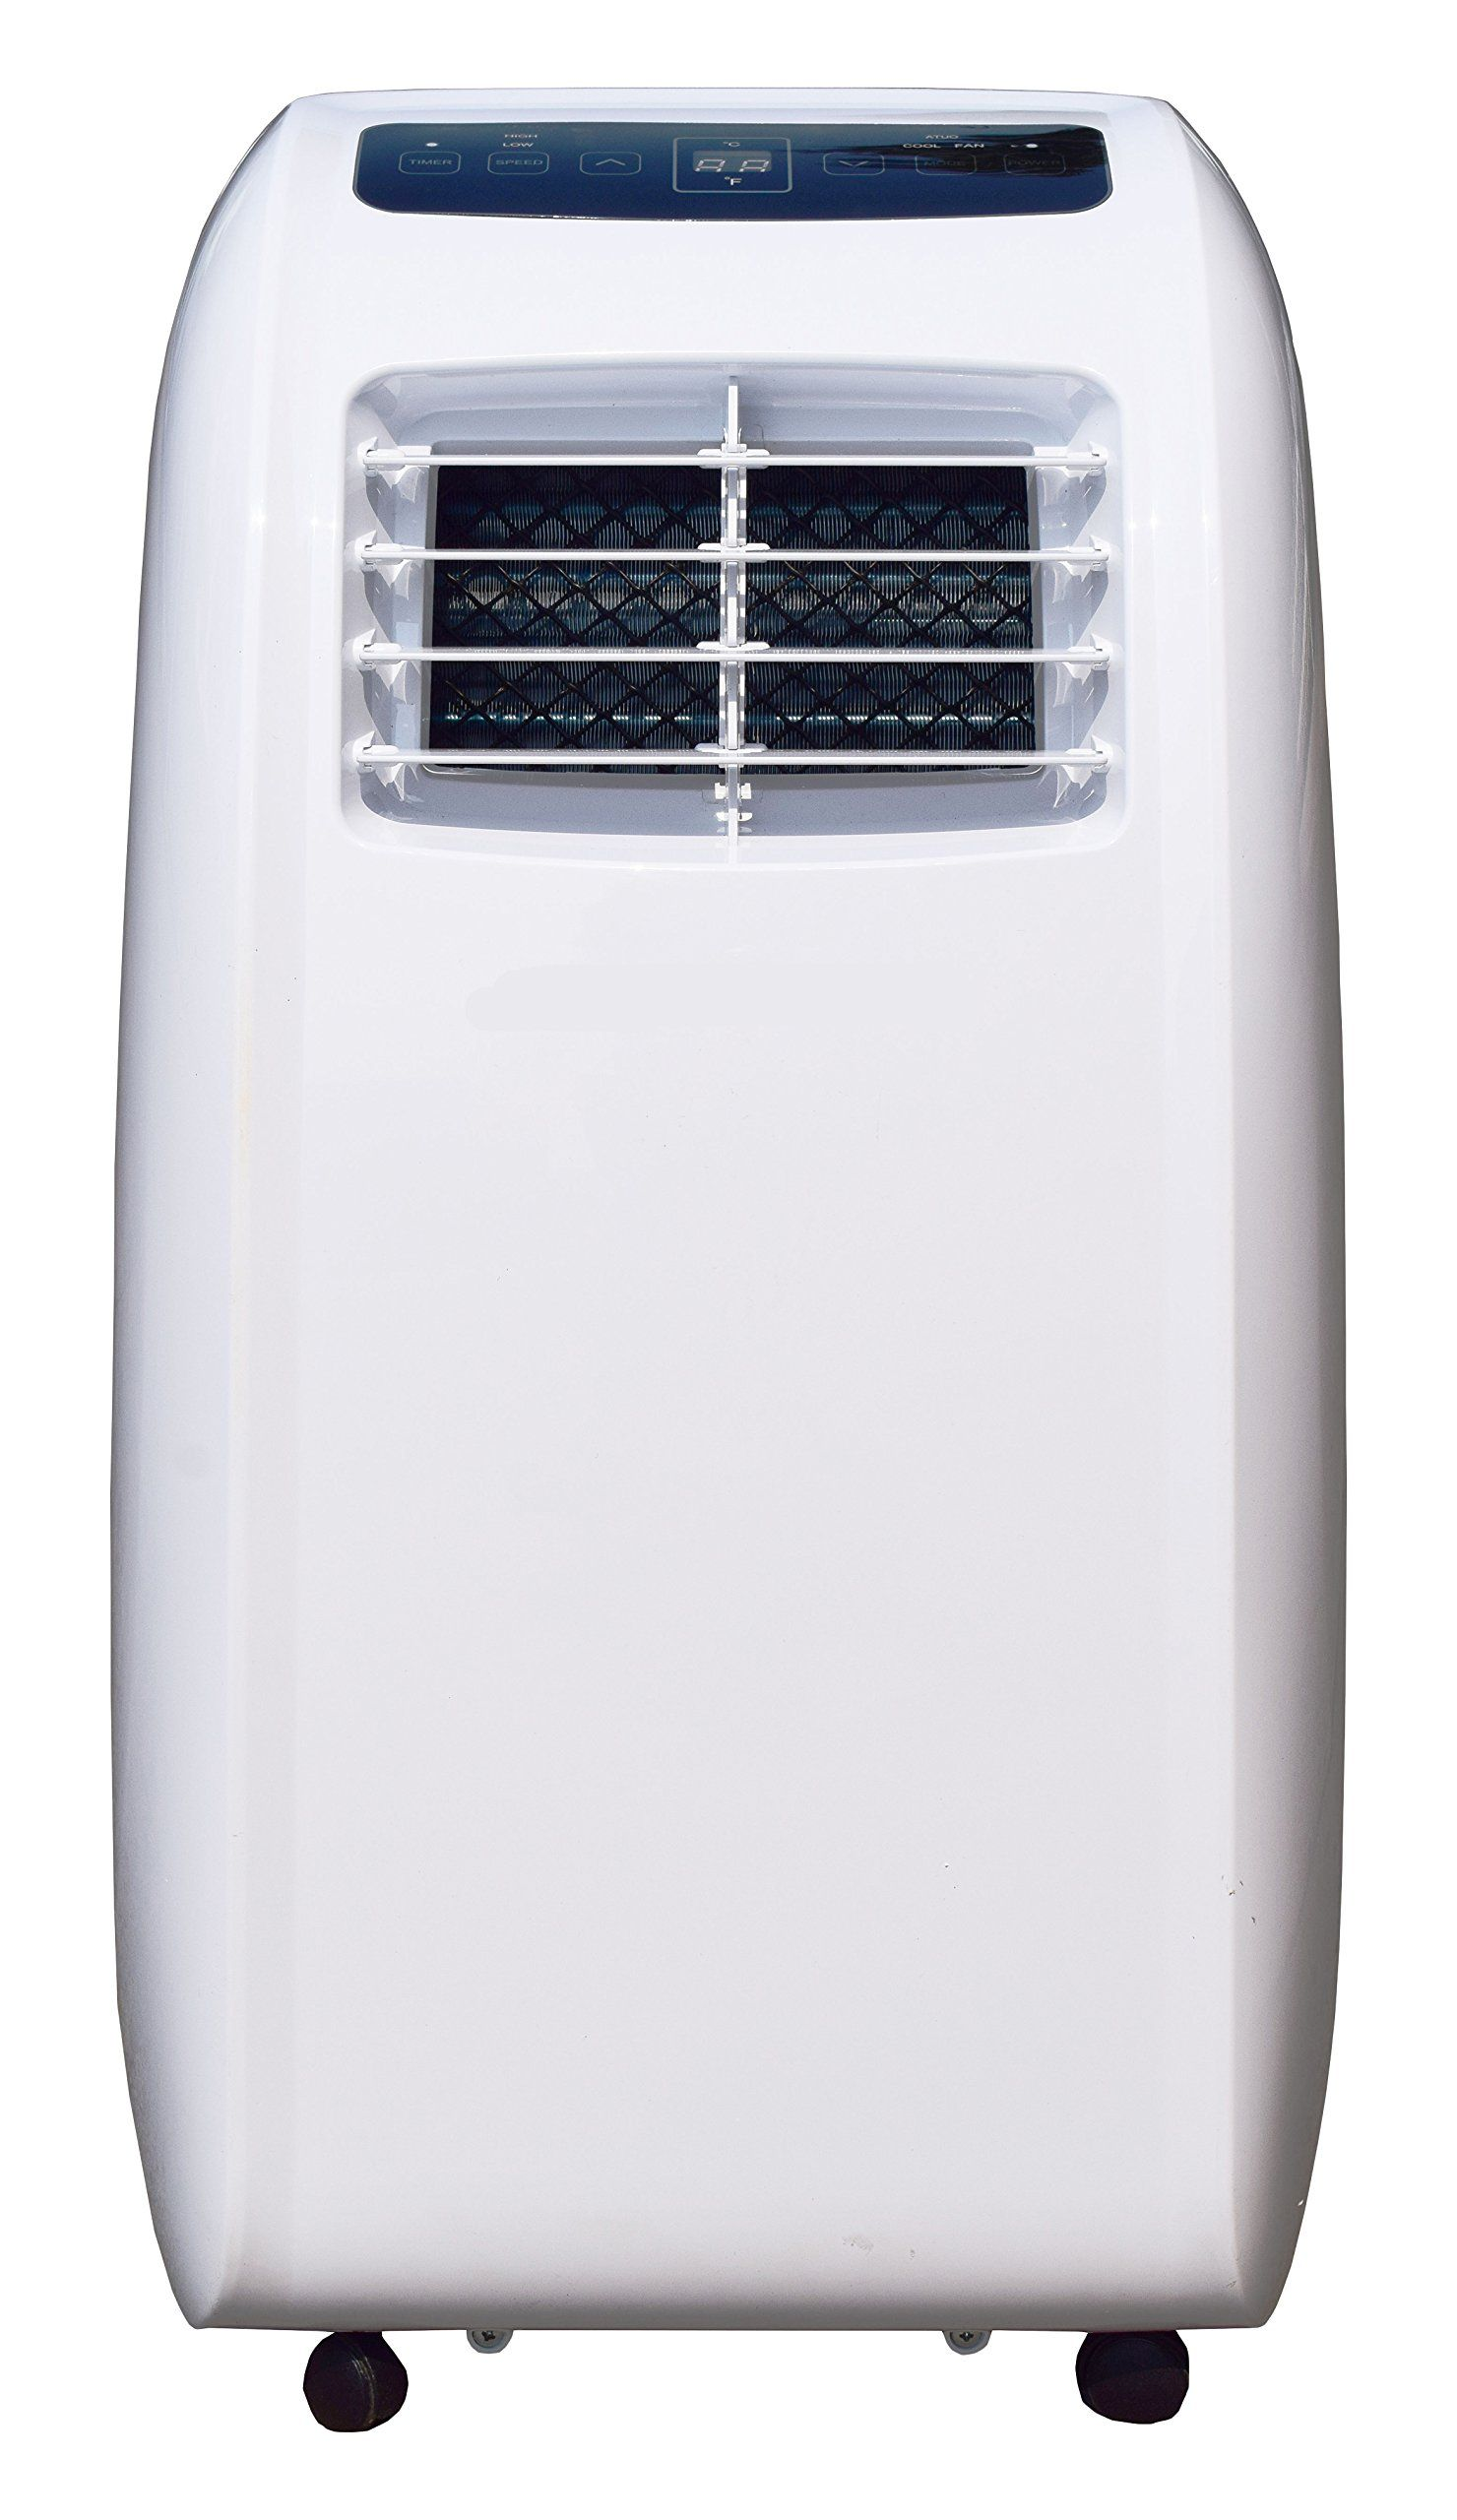 Cch Ypla08c Portable Air Conditioner Click On The Image For